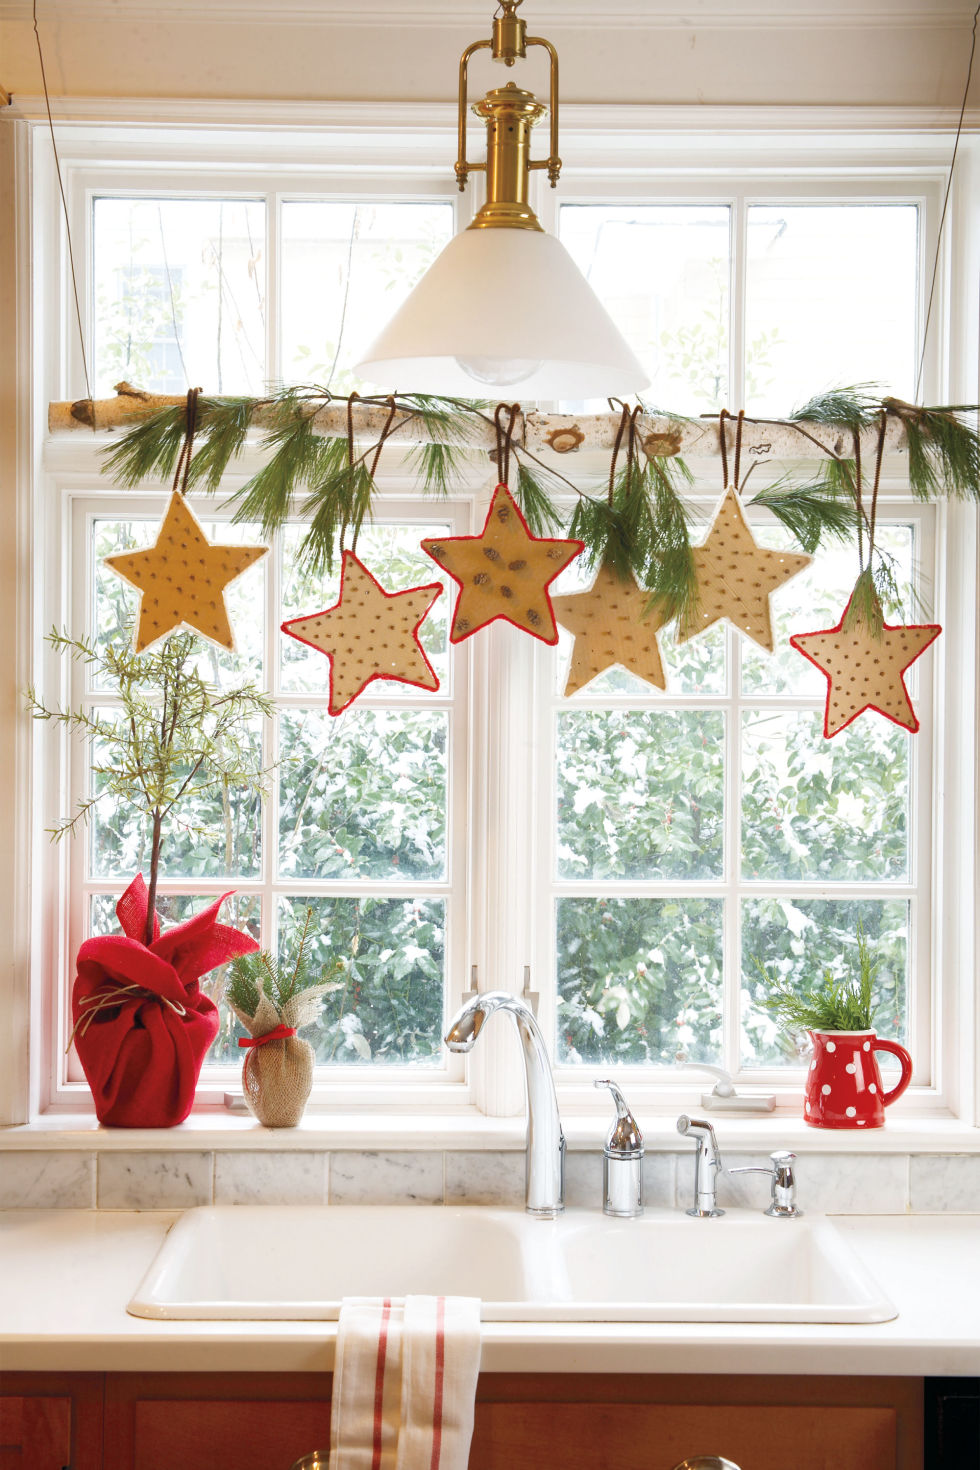 Indoor window christmas decorations - 43 Easy Diy Christmas Decorations Homemade Ideas For Holiday Decorating